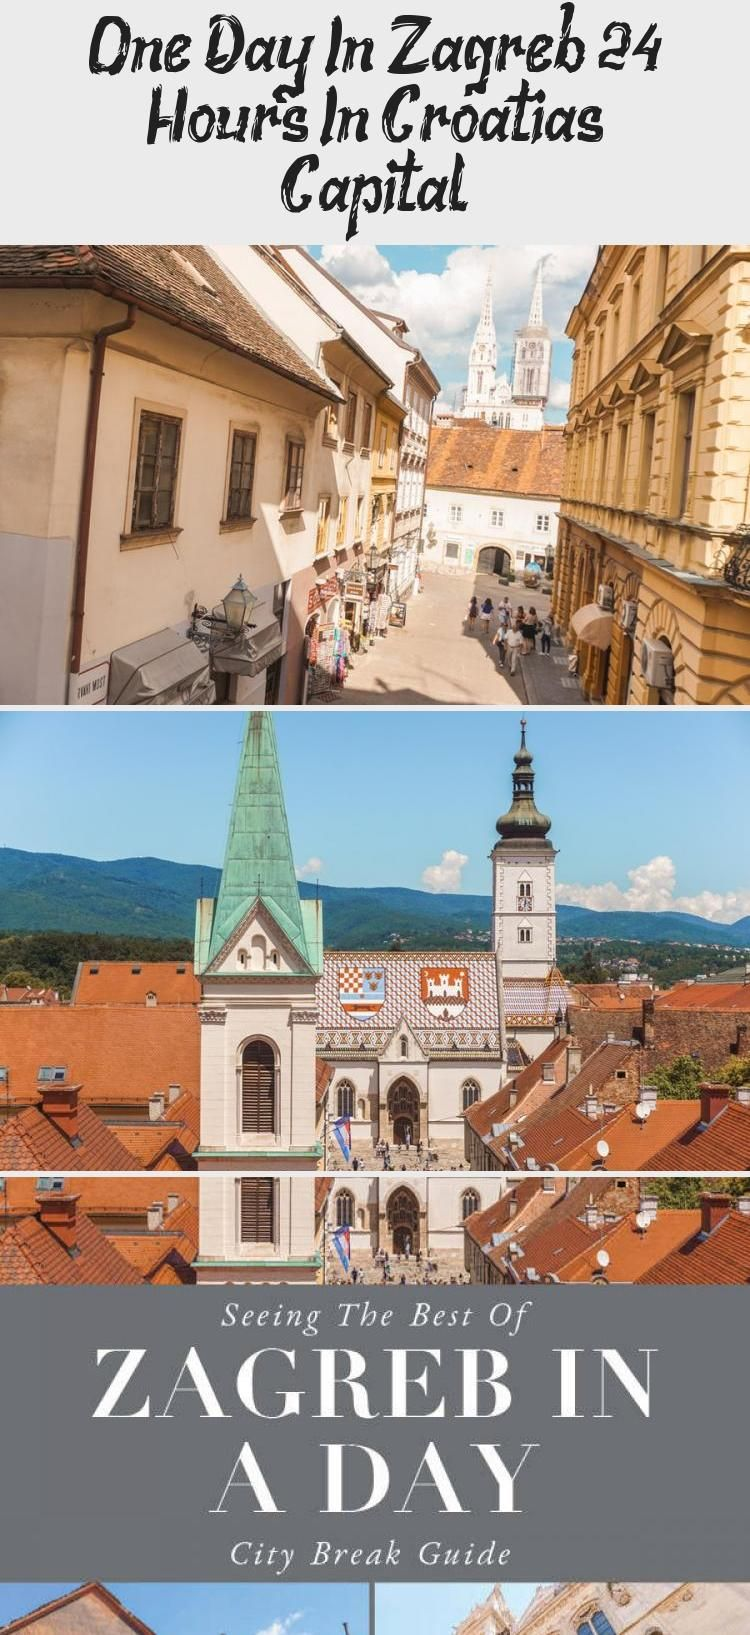 One Day In Zagreb 24 Hours In Croatia S Capital In 2020 Practical Travel Croatia Itinerary Day Trips